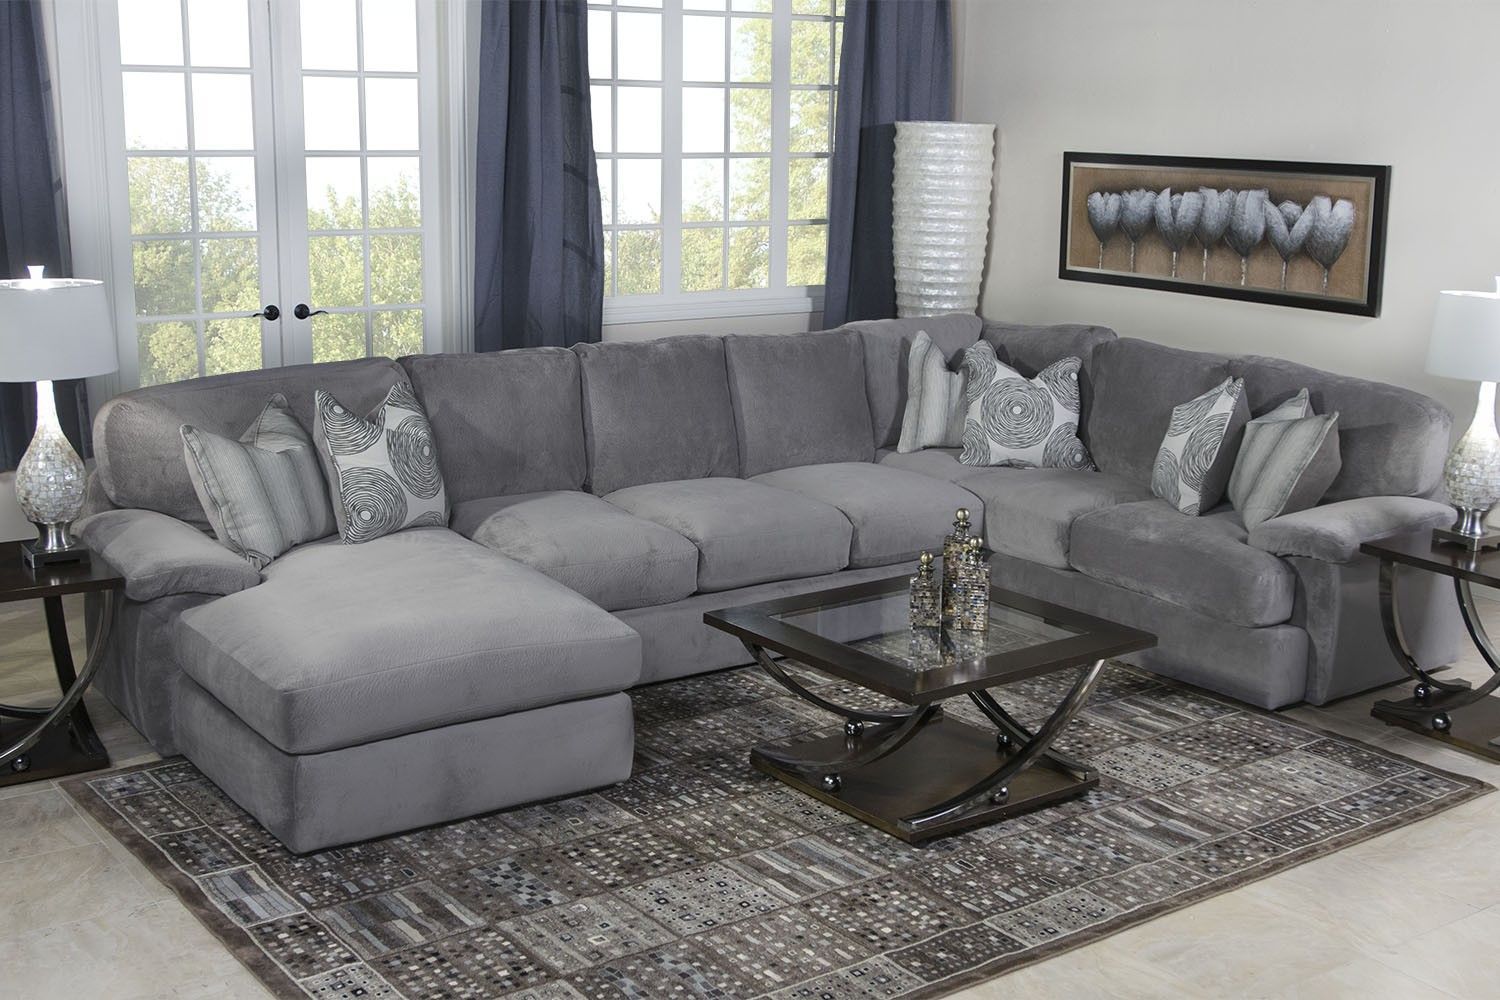 Key west sectional living room in gray living room mor for Family room furniture